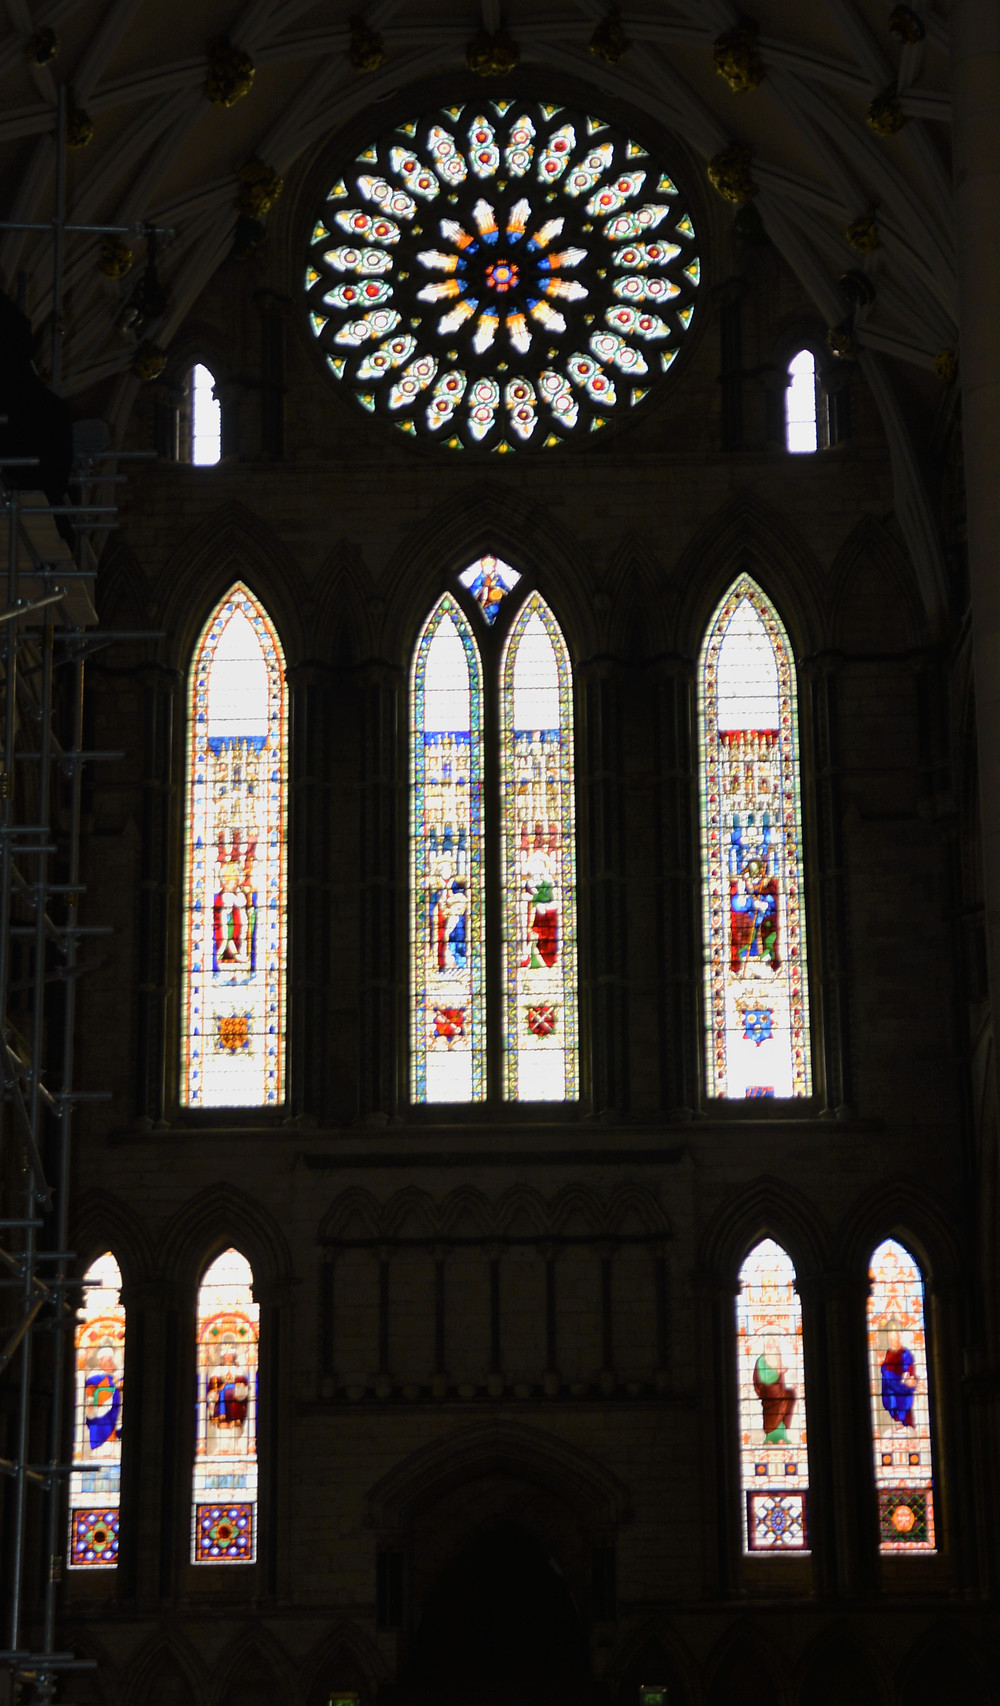 High in the gable of the South Transept is the Rose Window, one of the best known stained glass windows in England